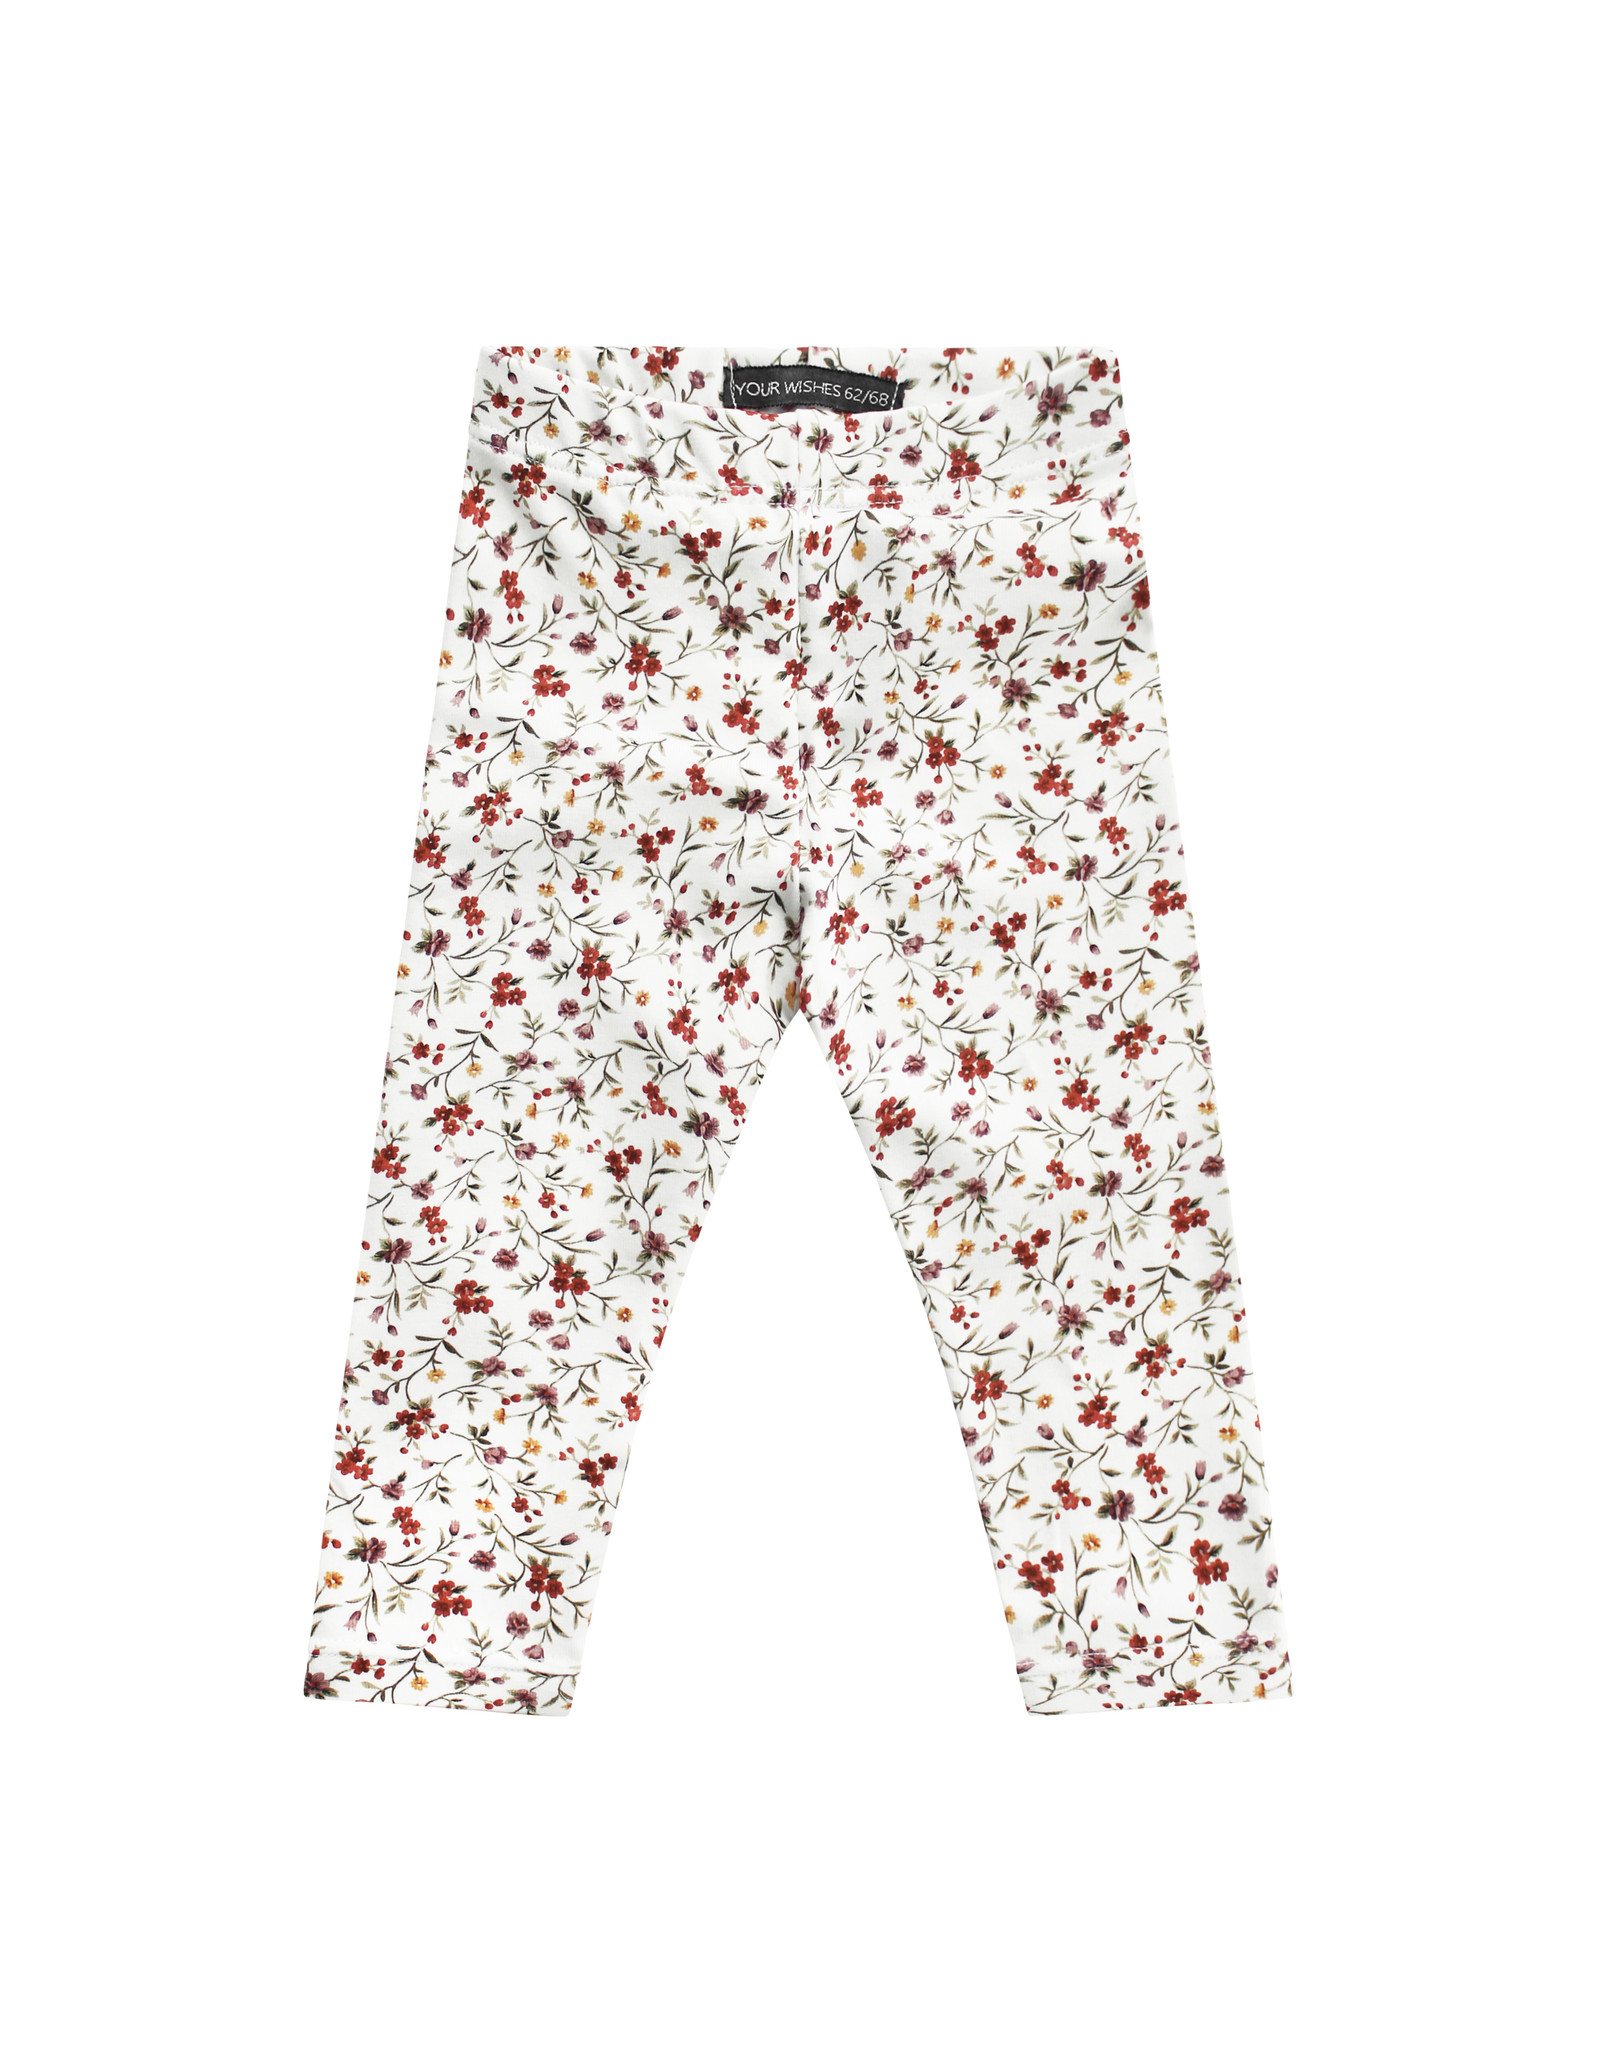 Your Wishes Pressed Blooming - Legging